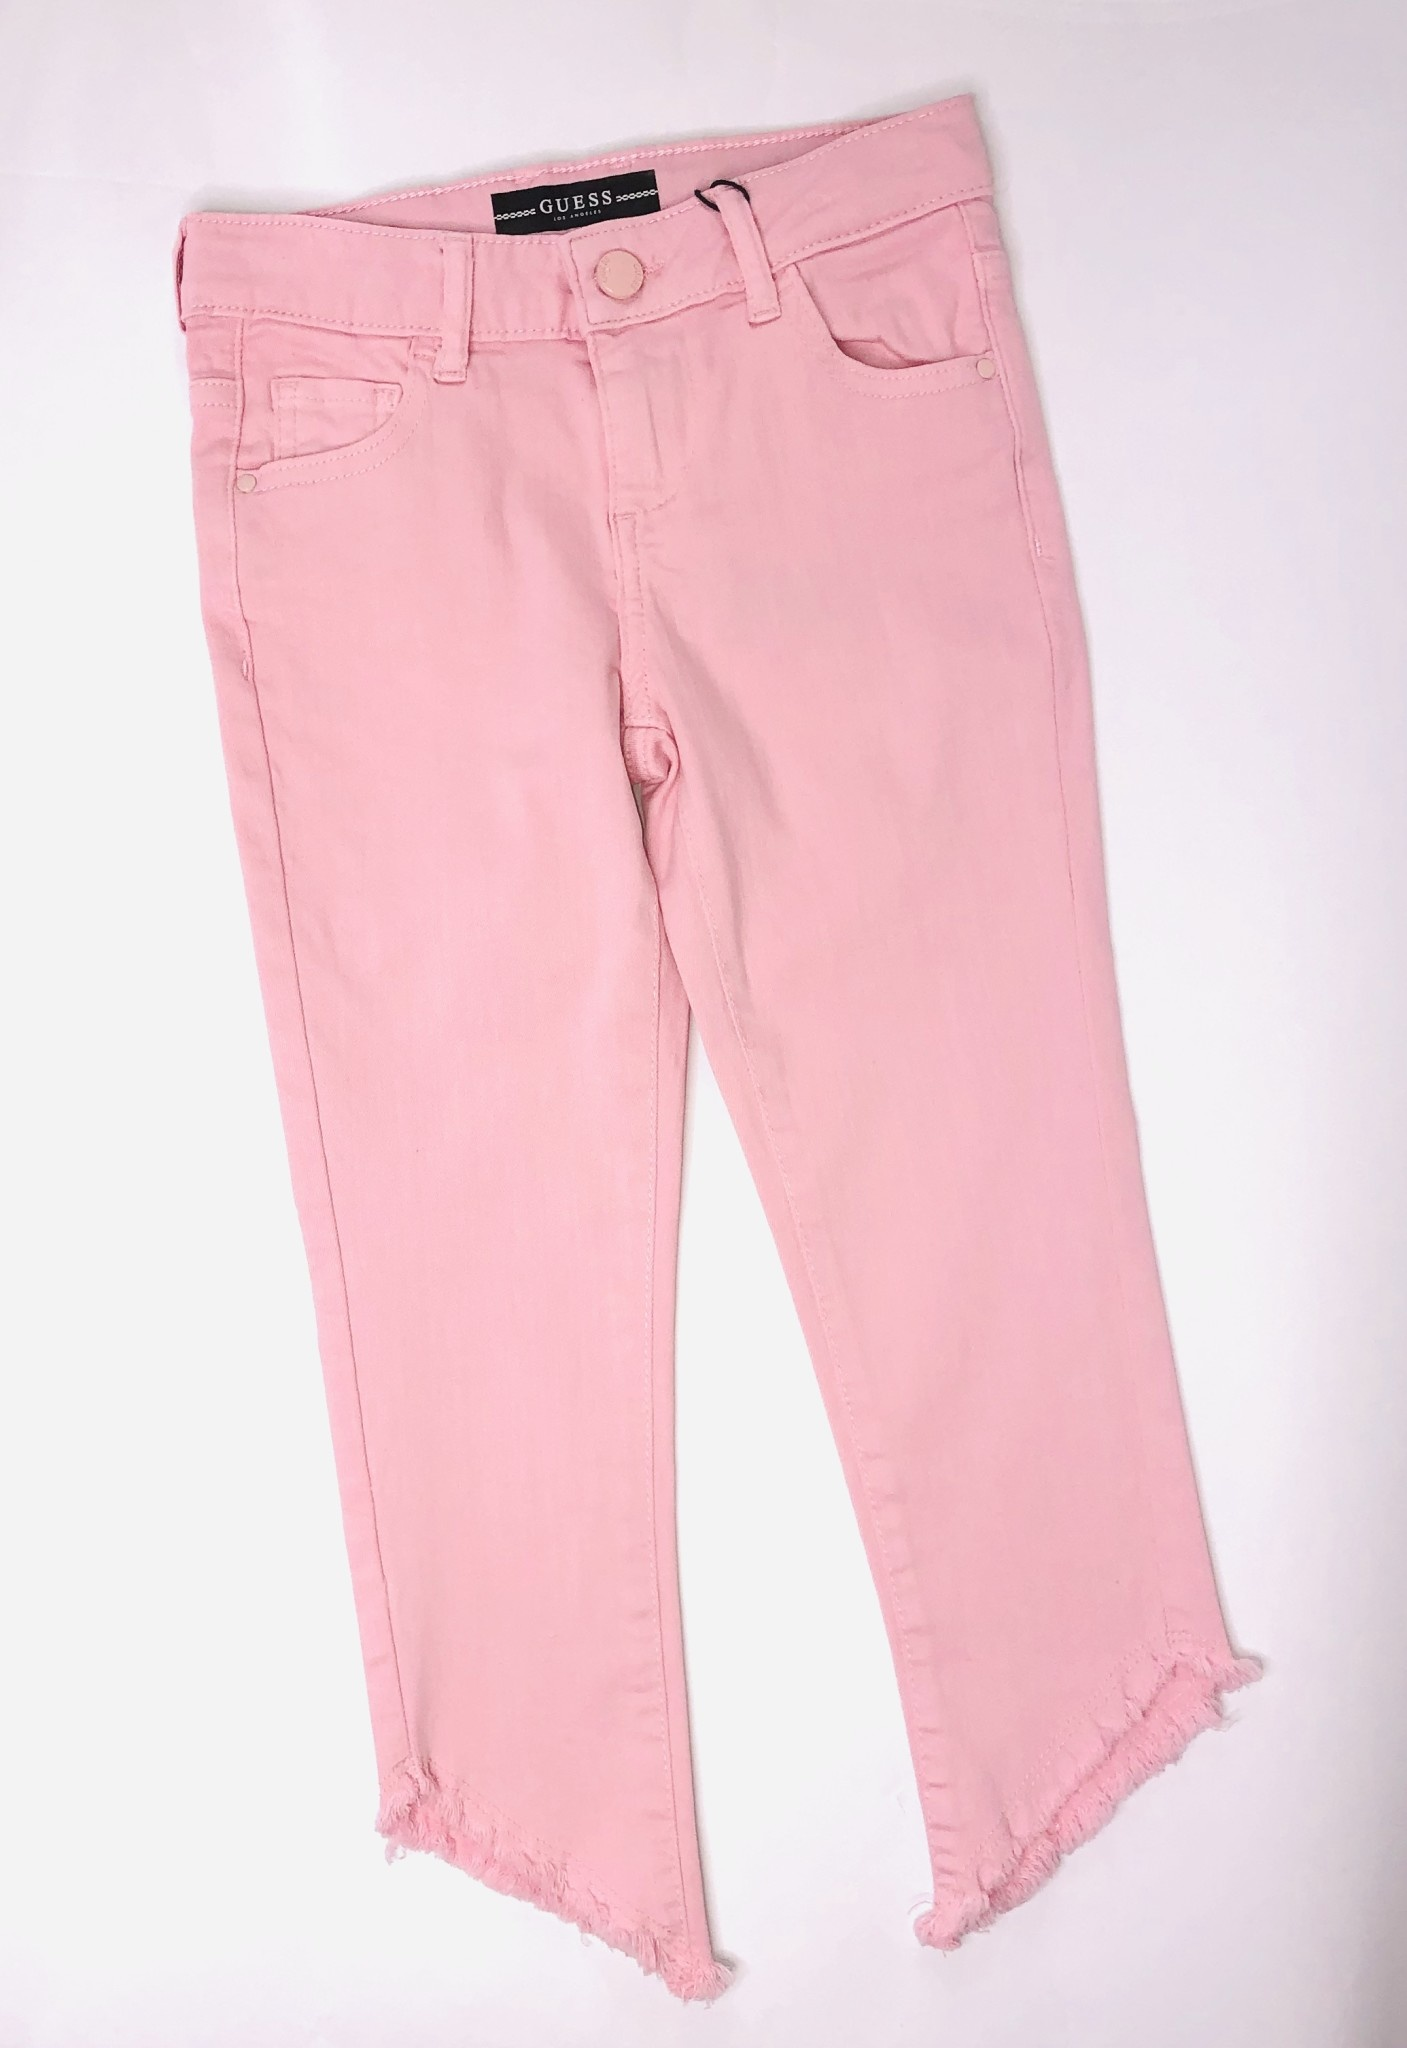 Guess Guess Girls Pink Jeans